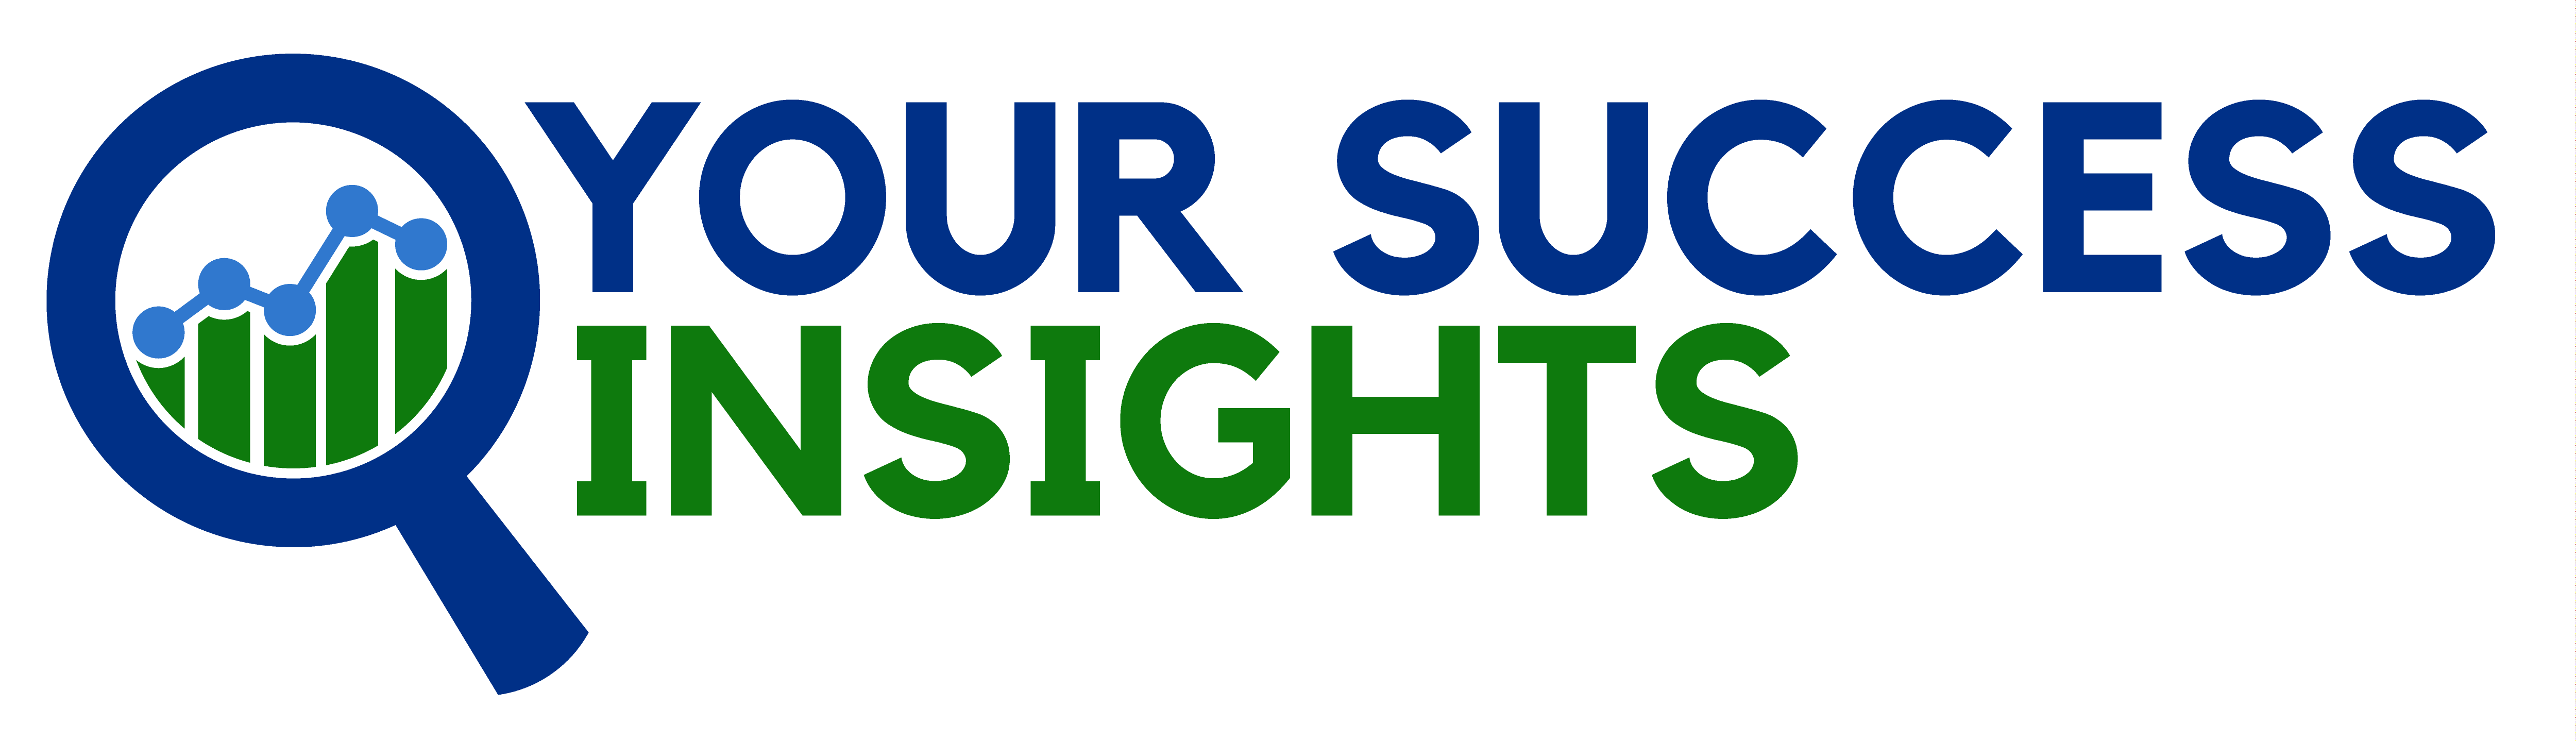 Your Success Insights